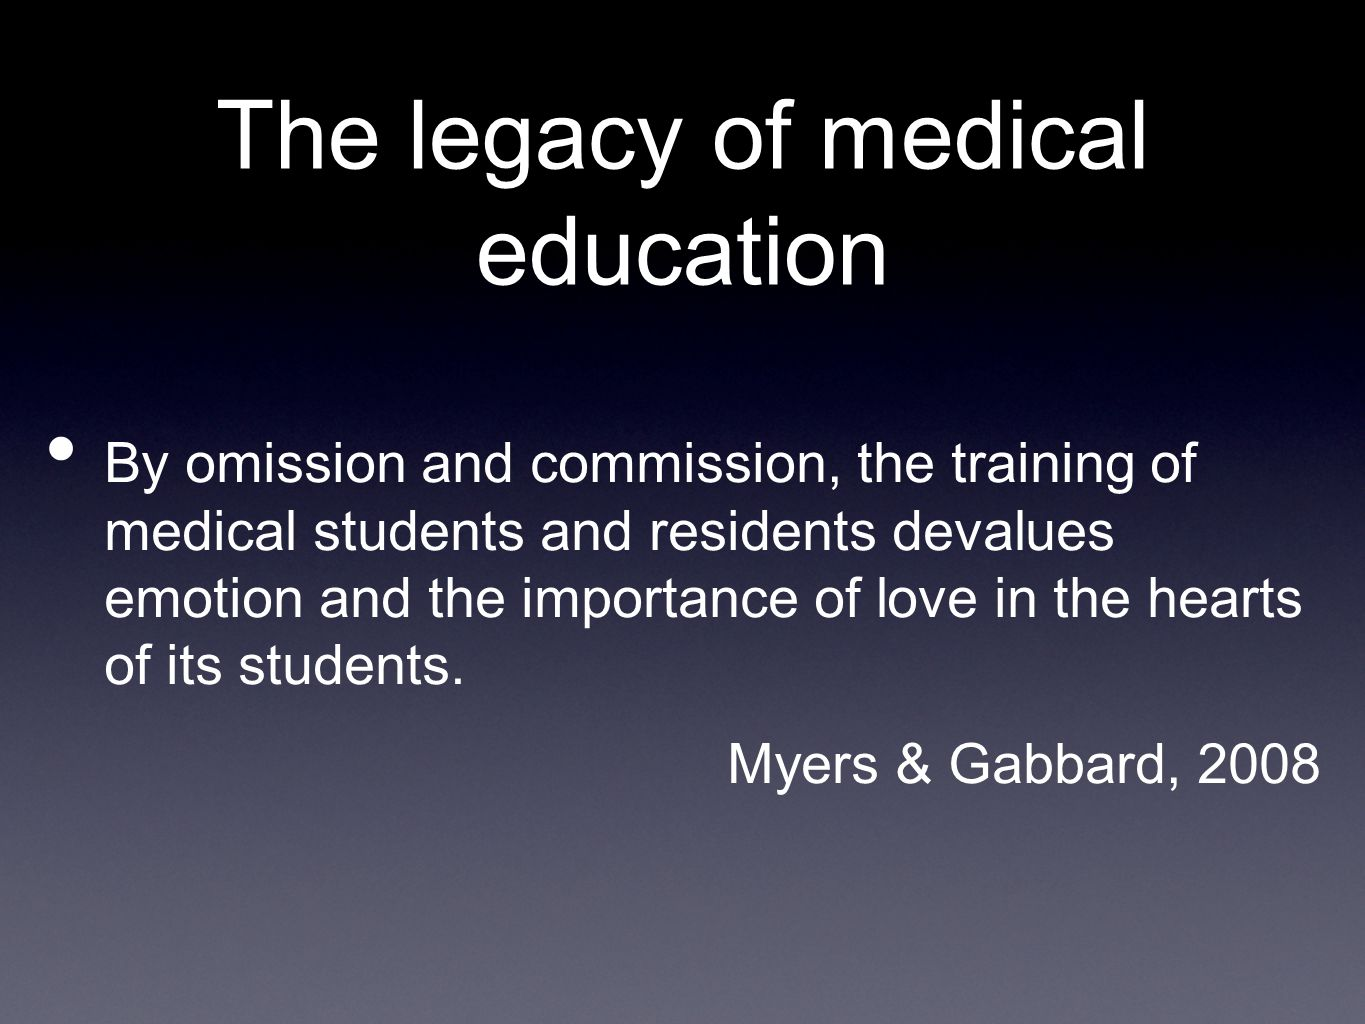 The legacy of medical education By omission and commission, the training of medical students and residents devalues emotion and the importance of love in the hearts of its students.